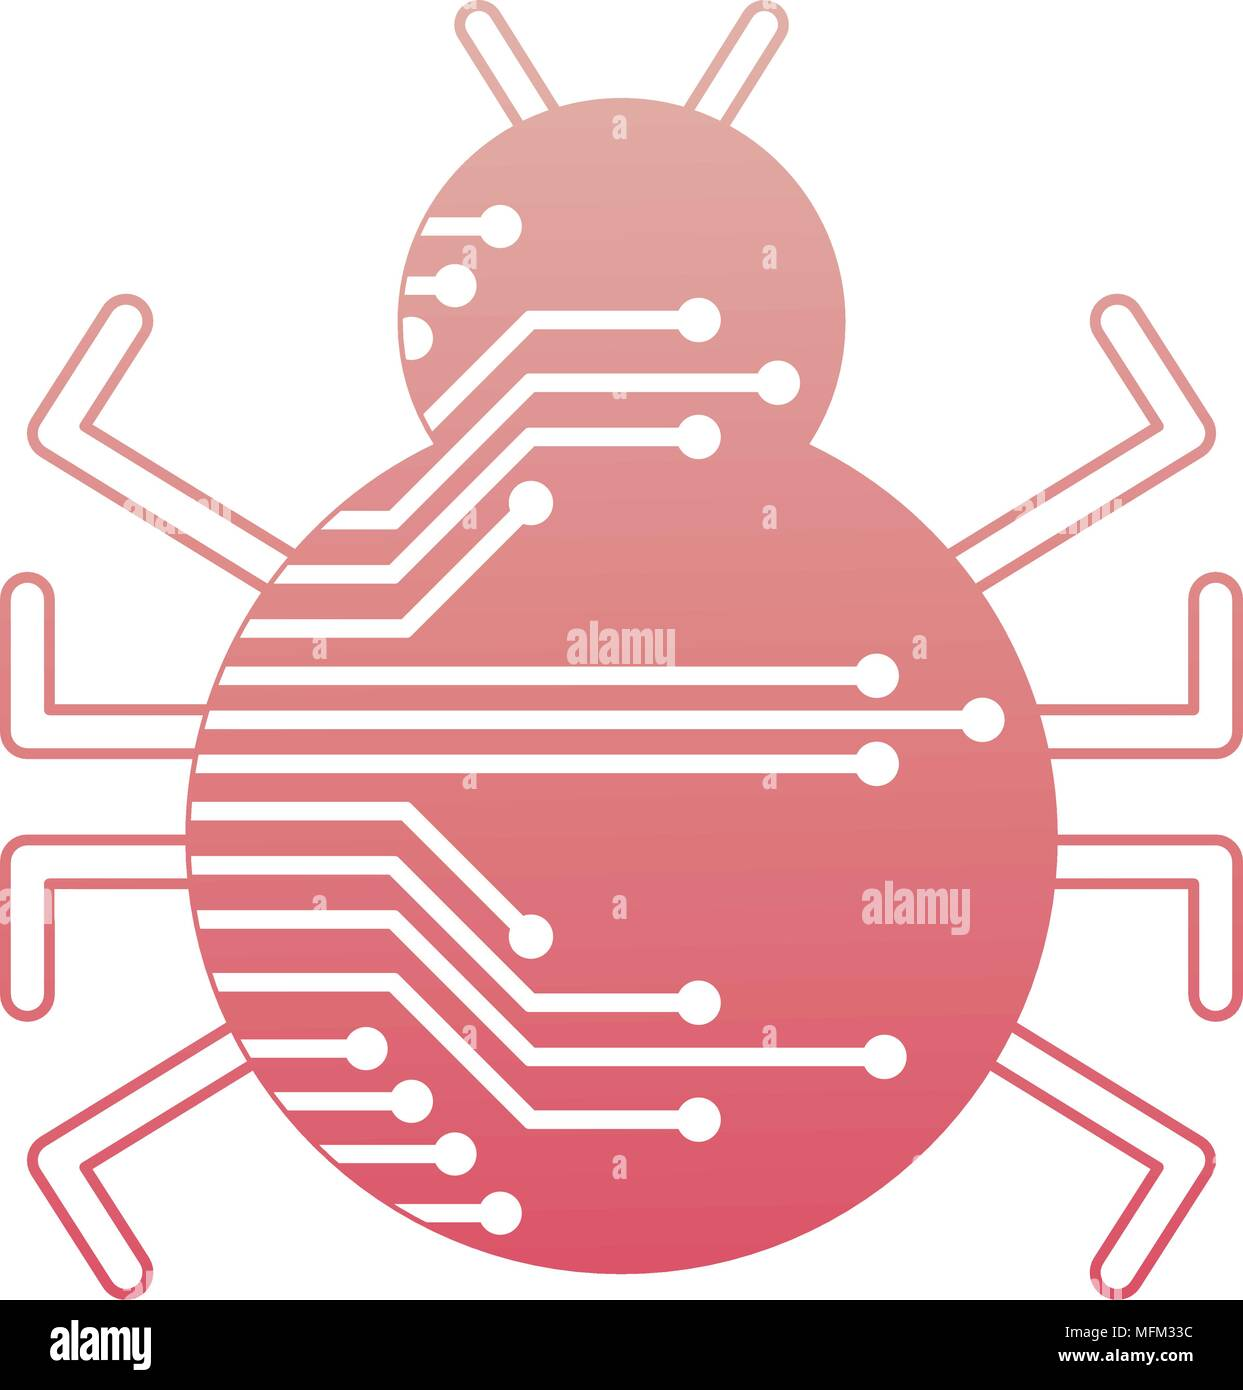 cyber security virus bug attack system - Stock Image